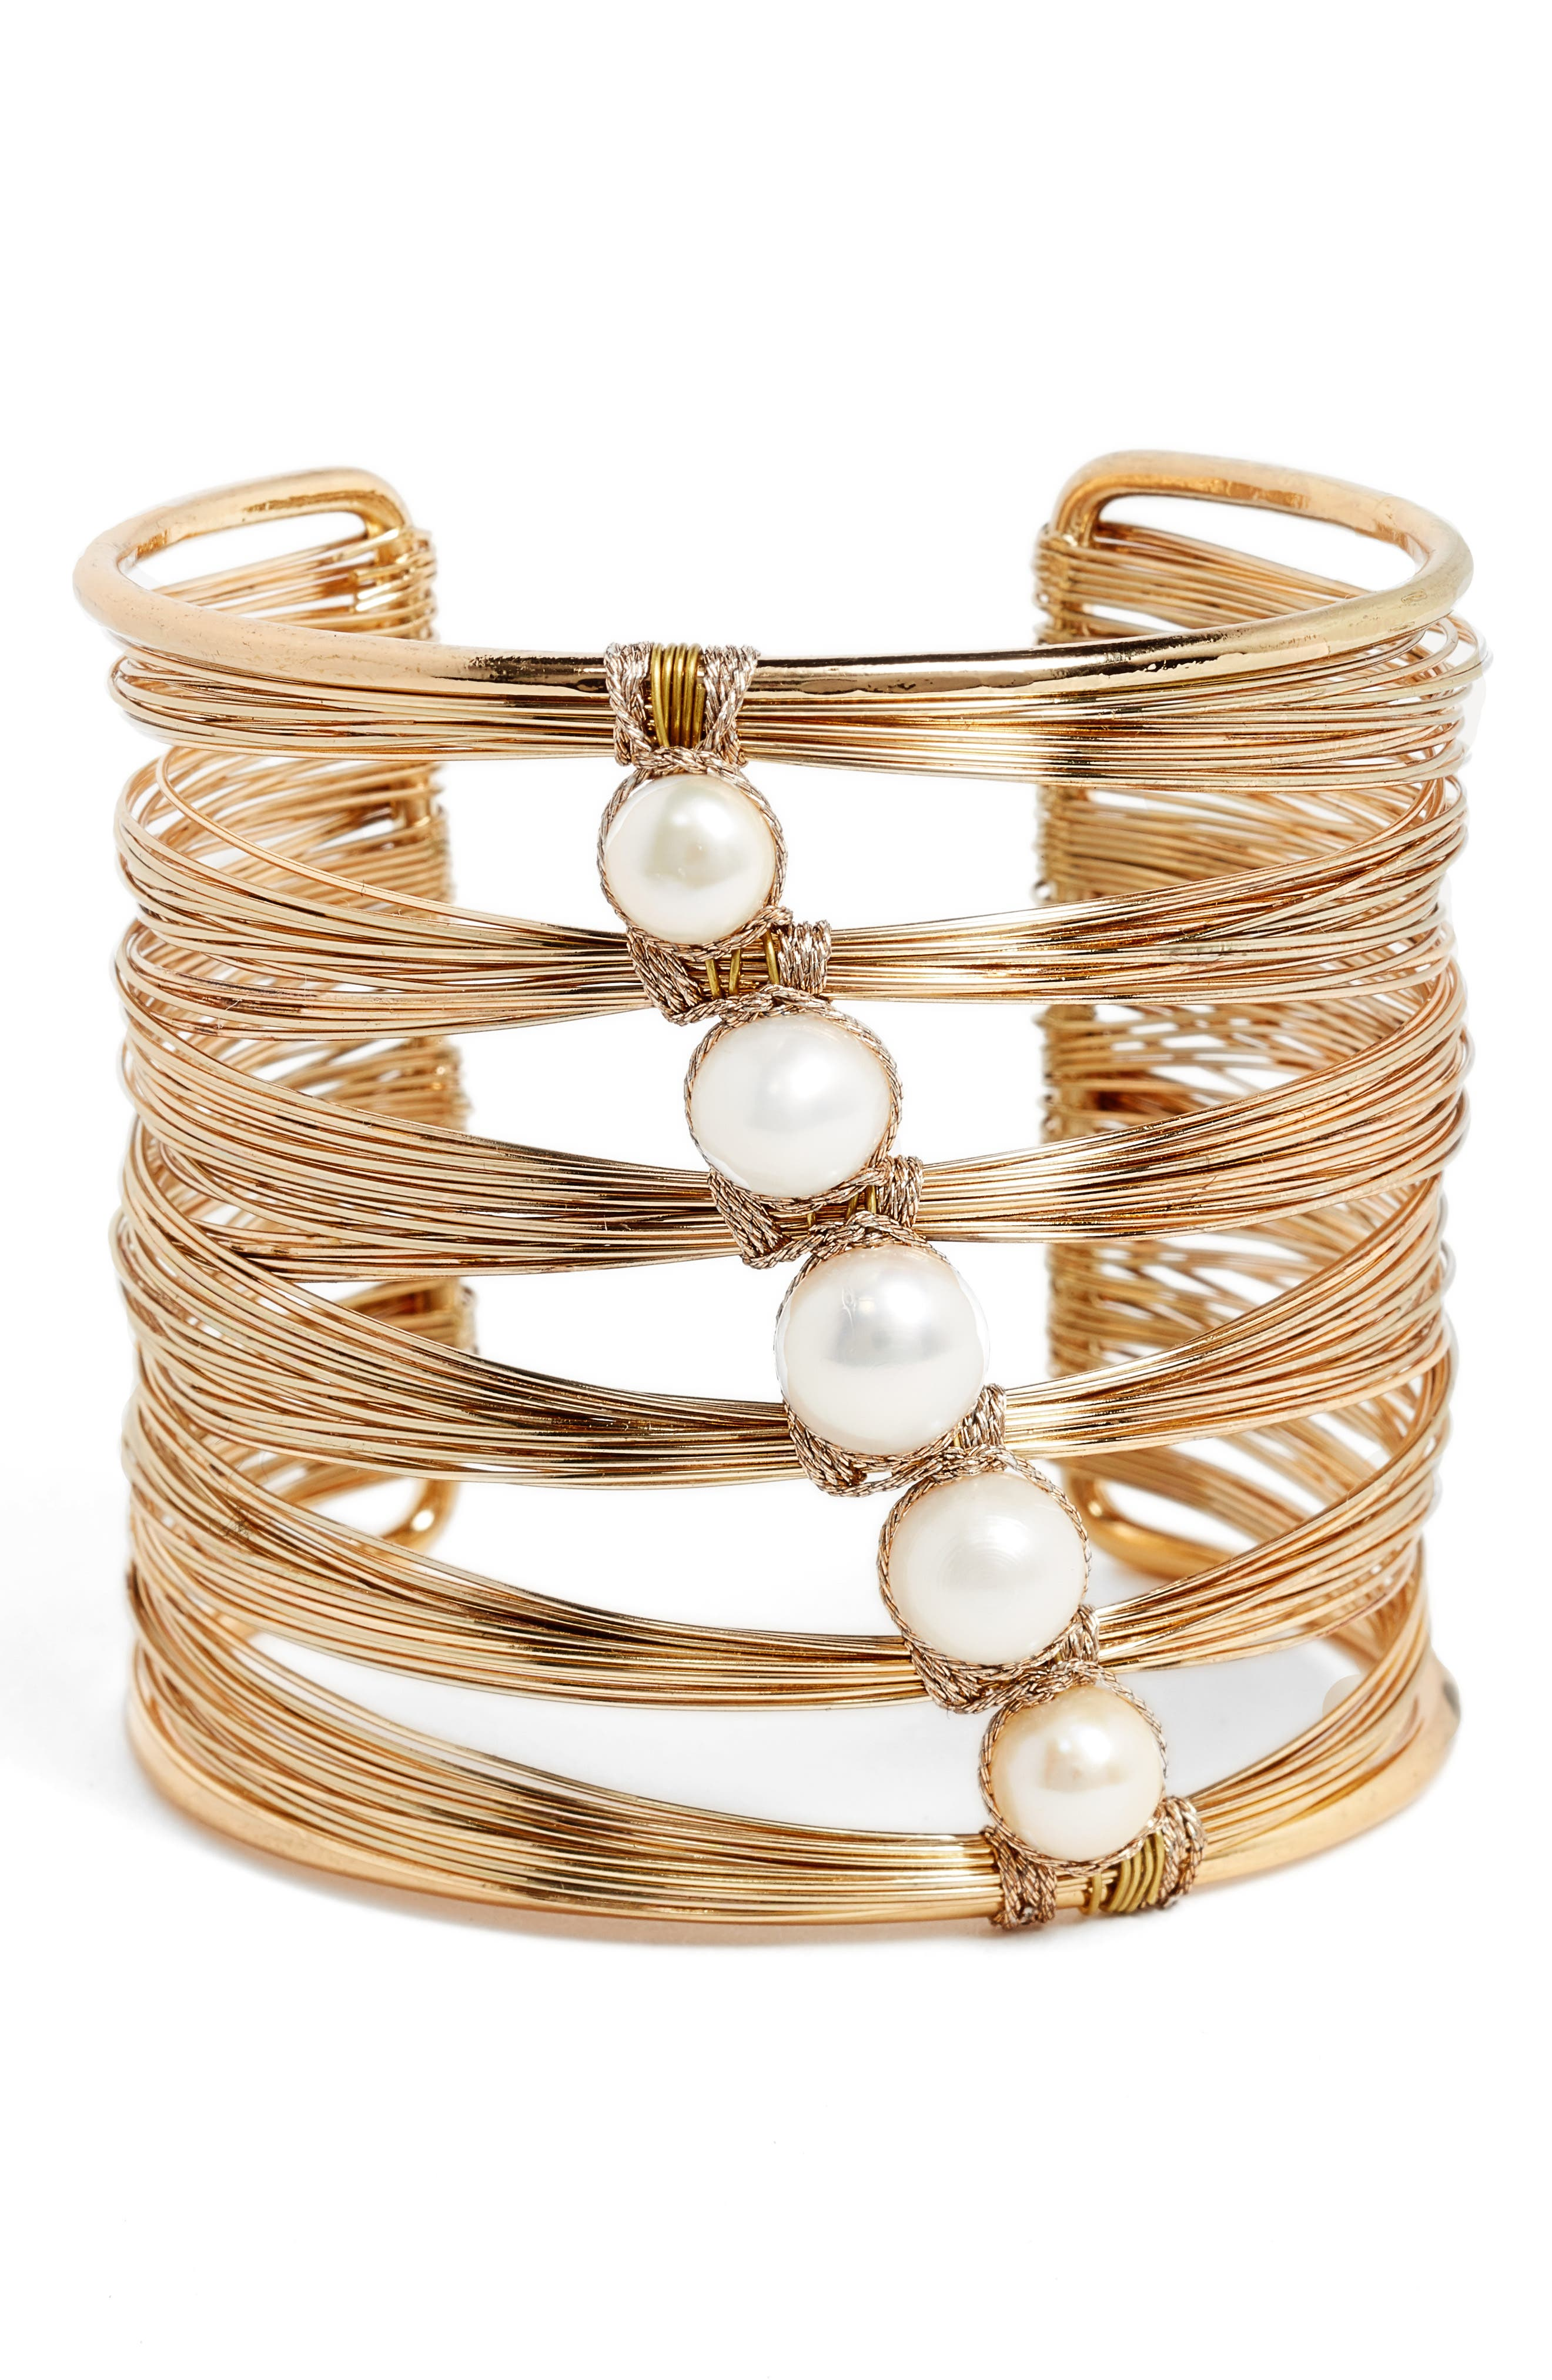 Alternate Image 1 Selected - Nakamol Design Freshwater Pearl Wire Cuff